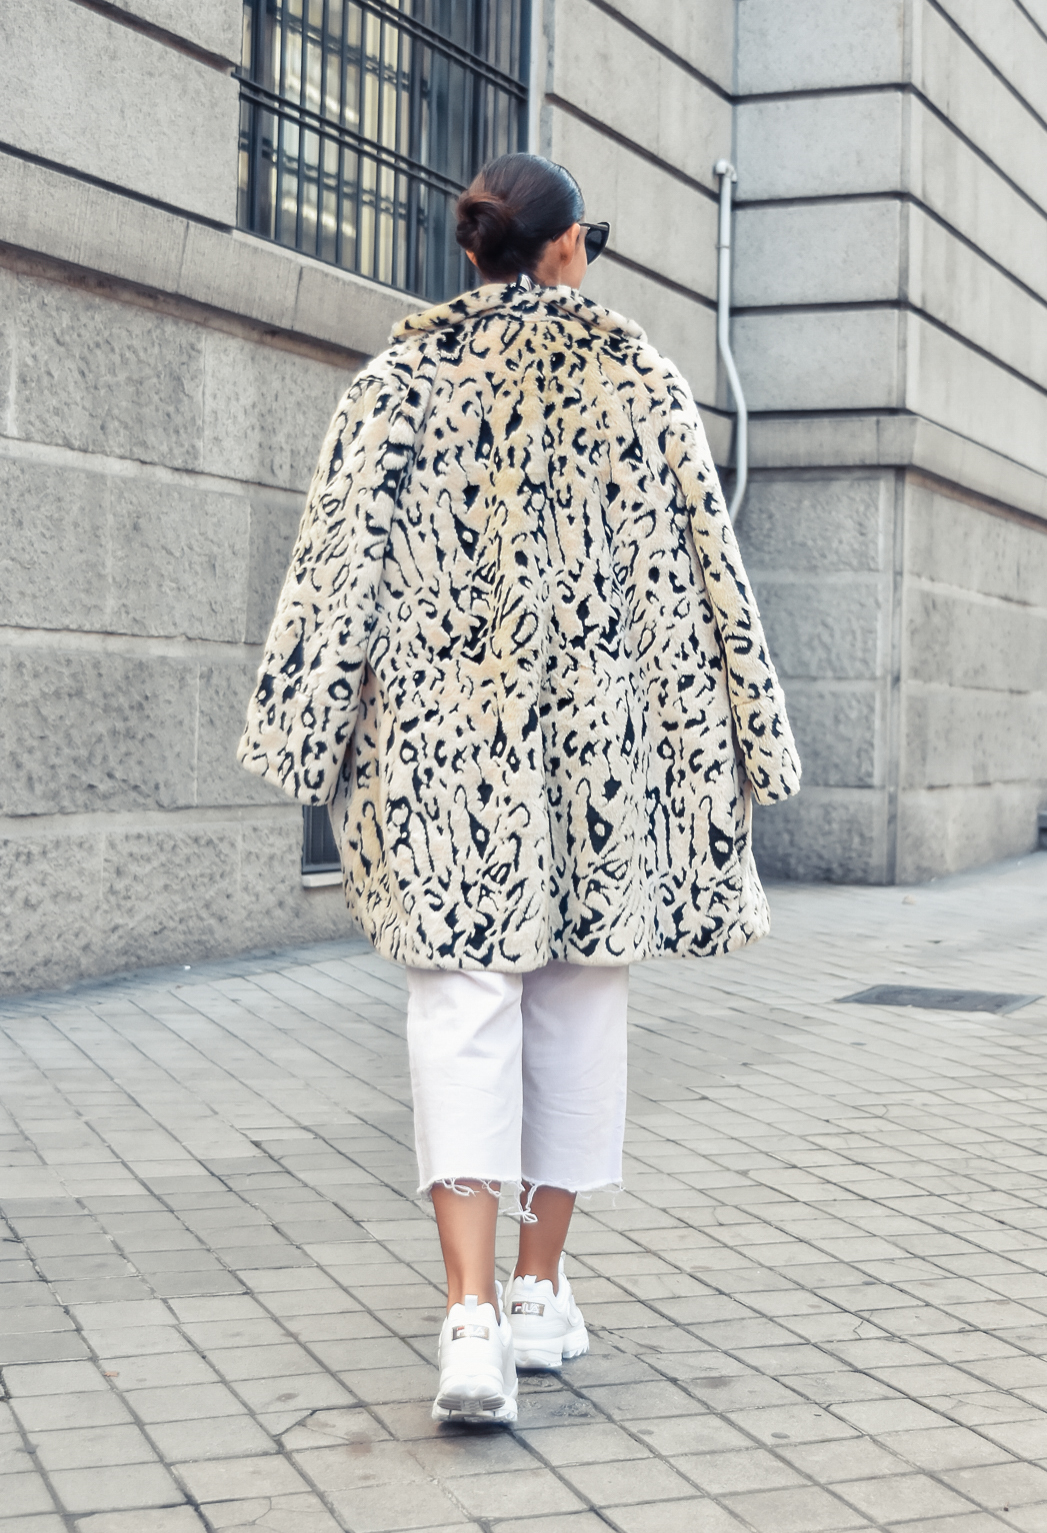 el_blog_de_silvia_look-of-the-day-total-look-lila-animal-print-ugly-sneakers_fashion_blogger (3)